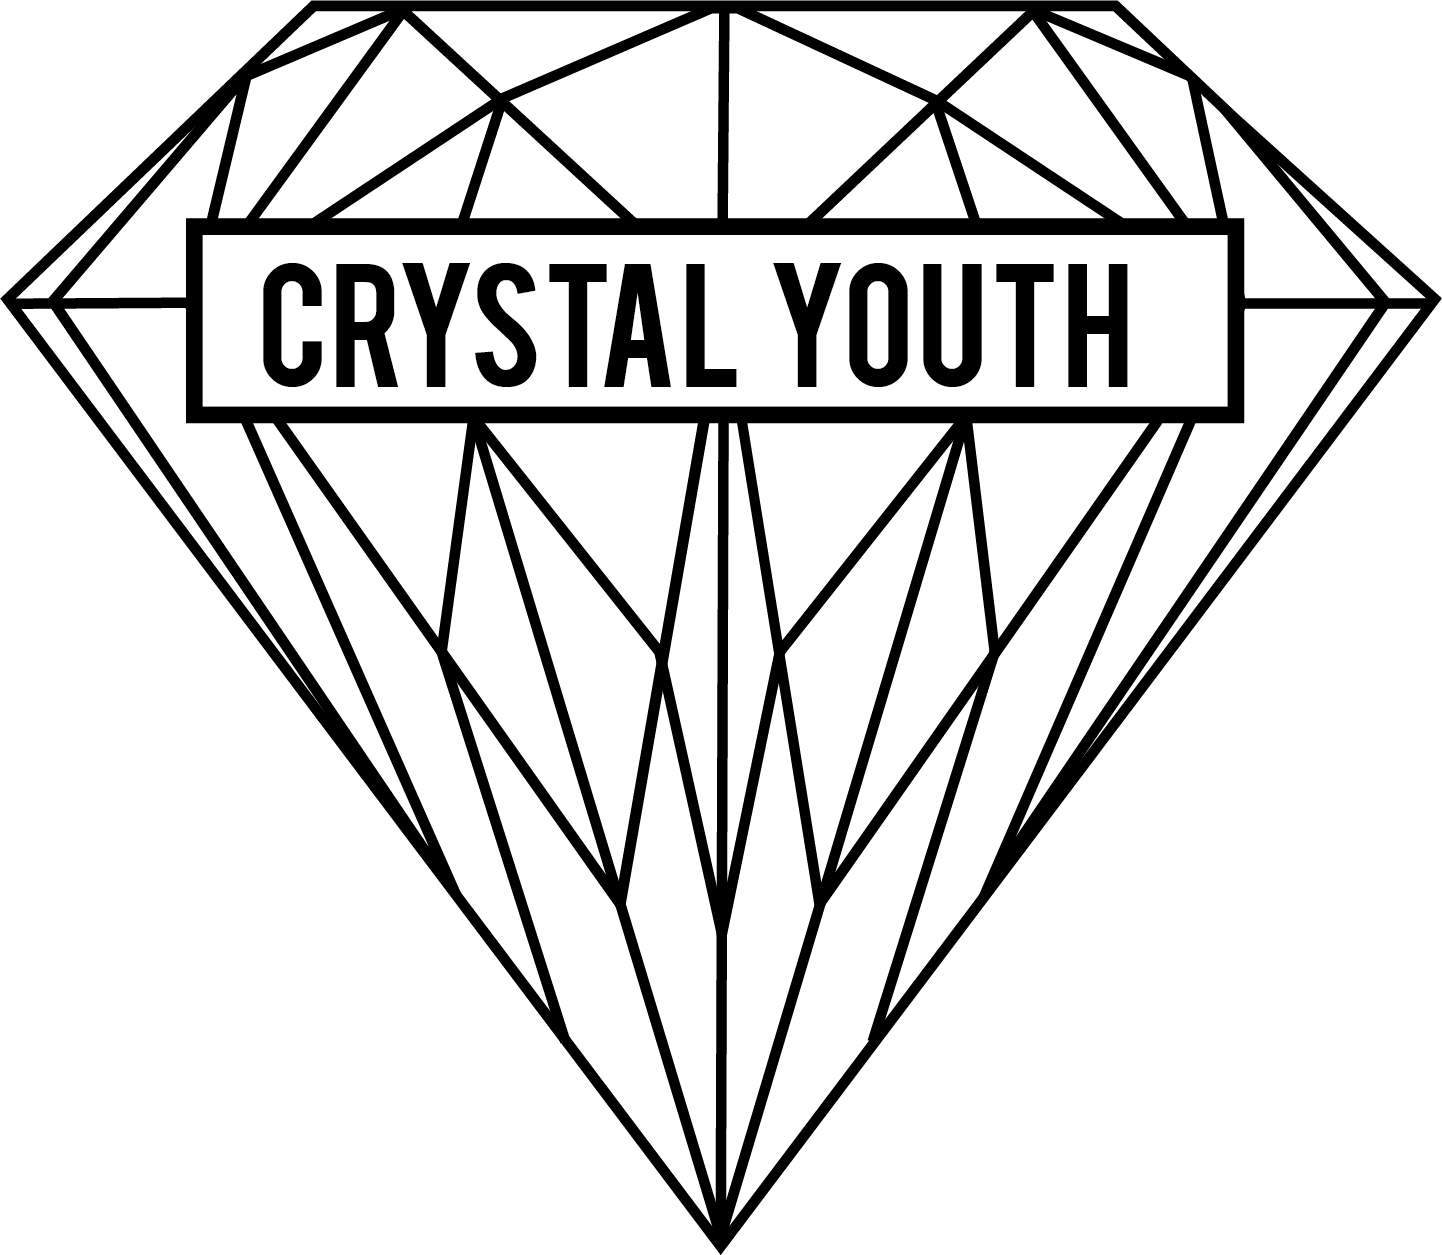 Crystal Youth